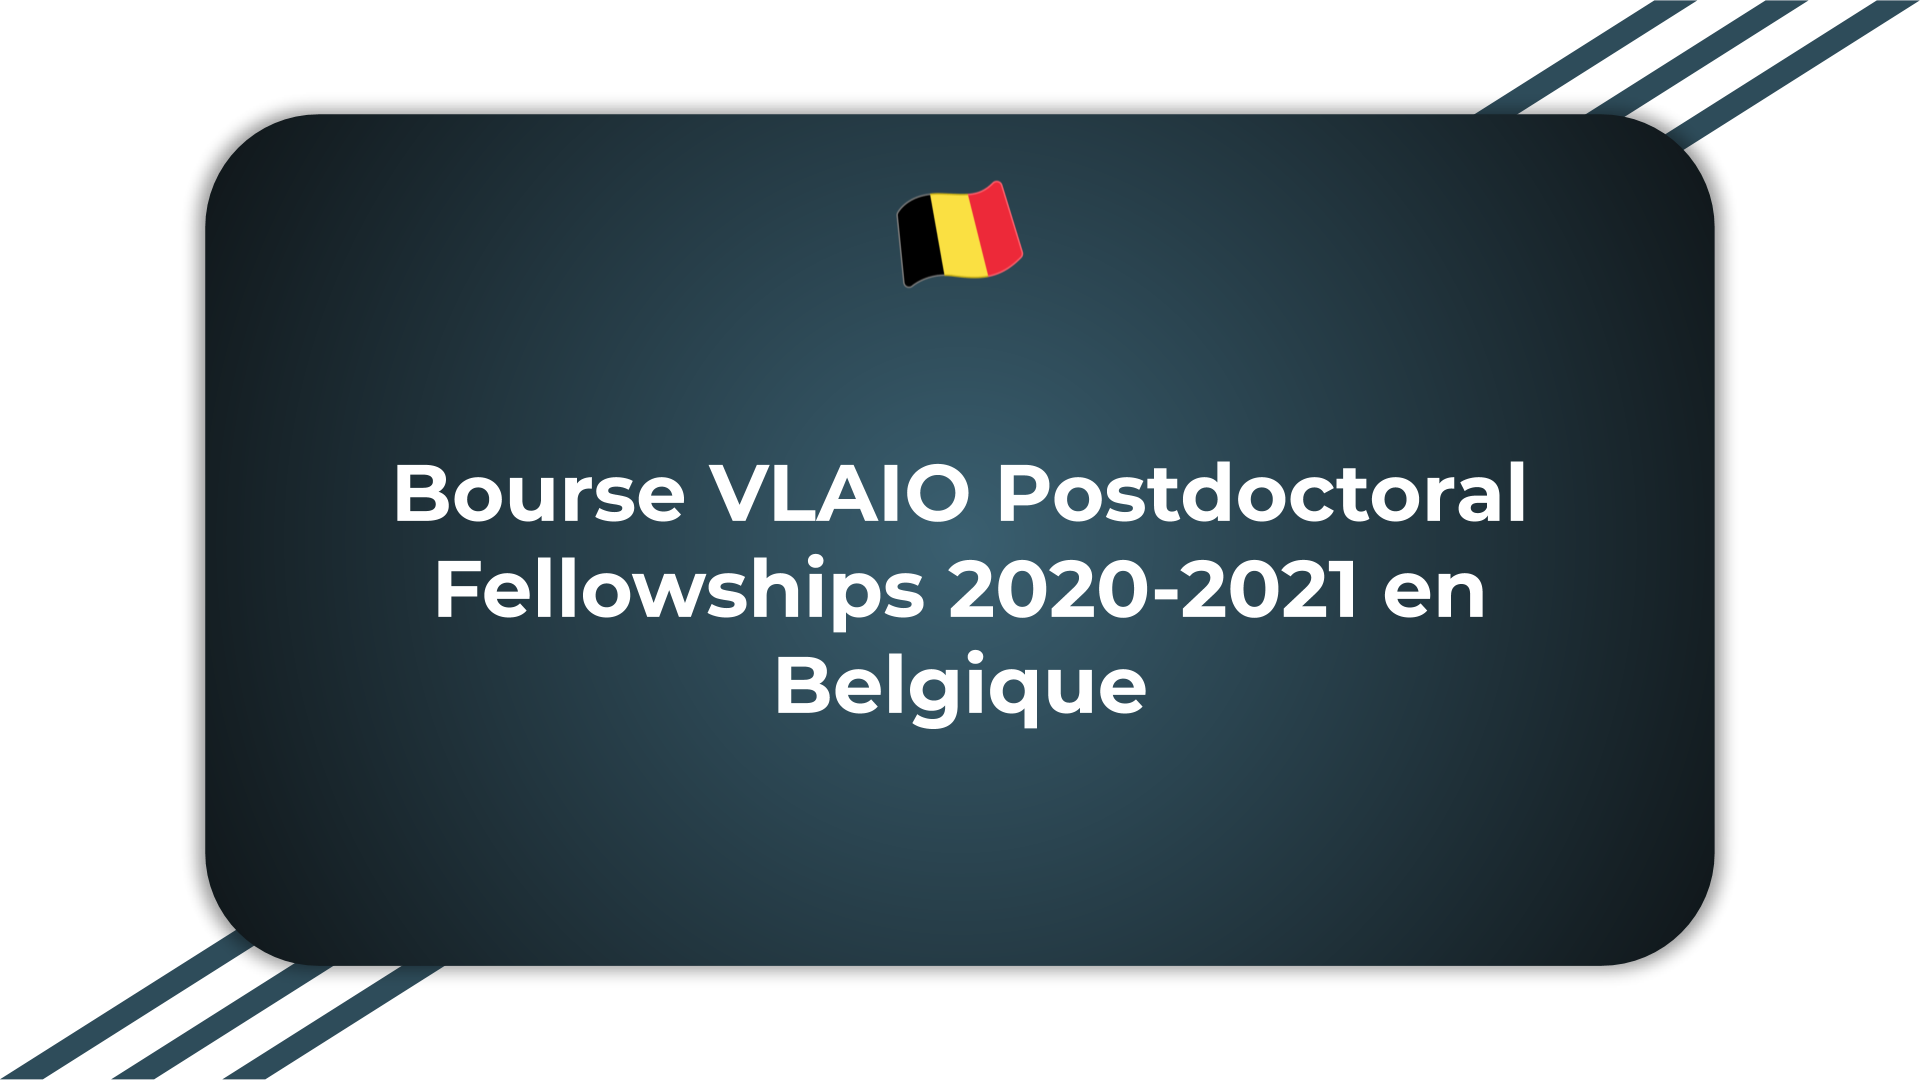 Bourse VLAIO Postdoctoral Fellowships